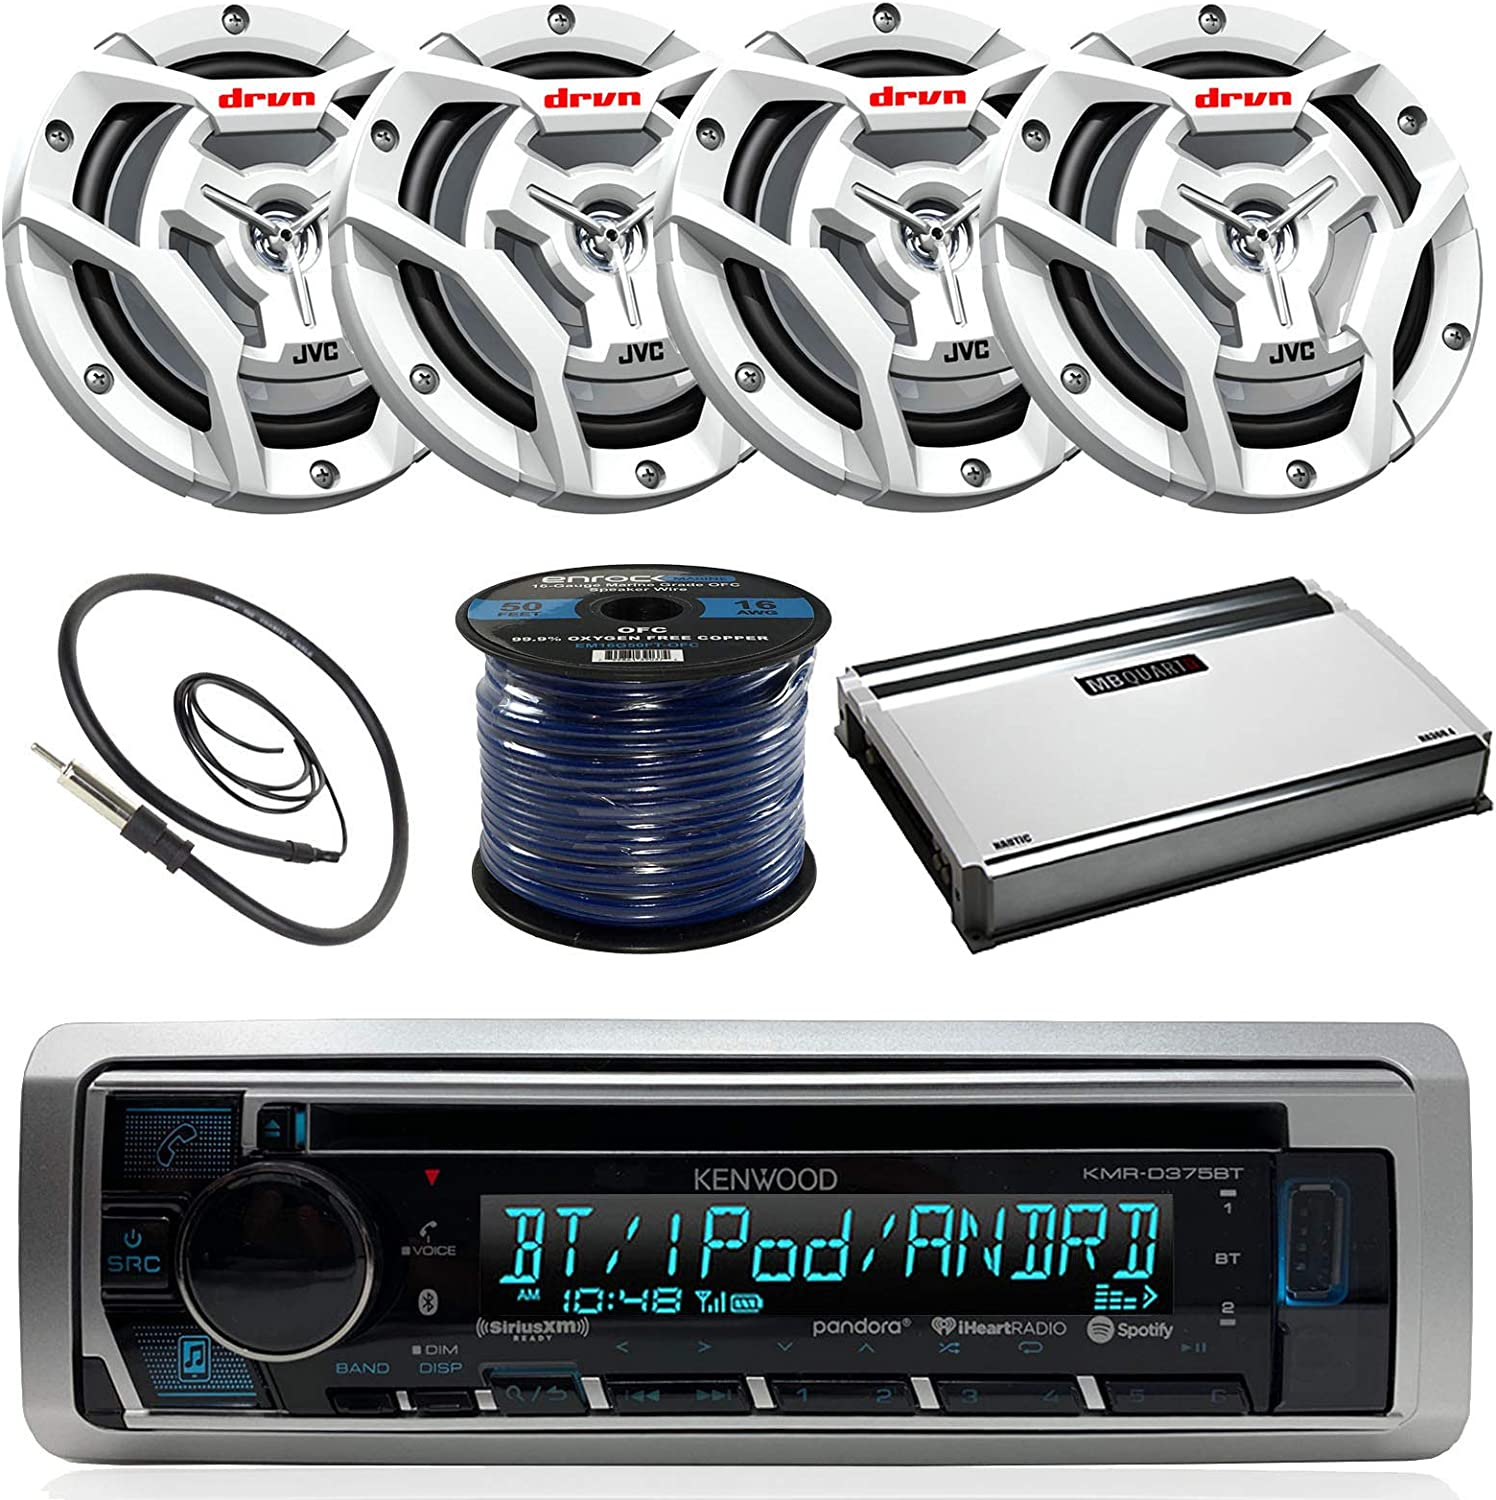 360-Watt Amplifier Kenwood KMR-D365BT Marine Boat Radio Stereo CD Player Receiver Bundle Combo with 4X JVC CS-DR6201MW 6.5 2-Way Coaxial Speakers 50 Foot 16g Speaker Wire Enrock Radio Antenna